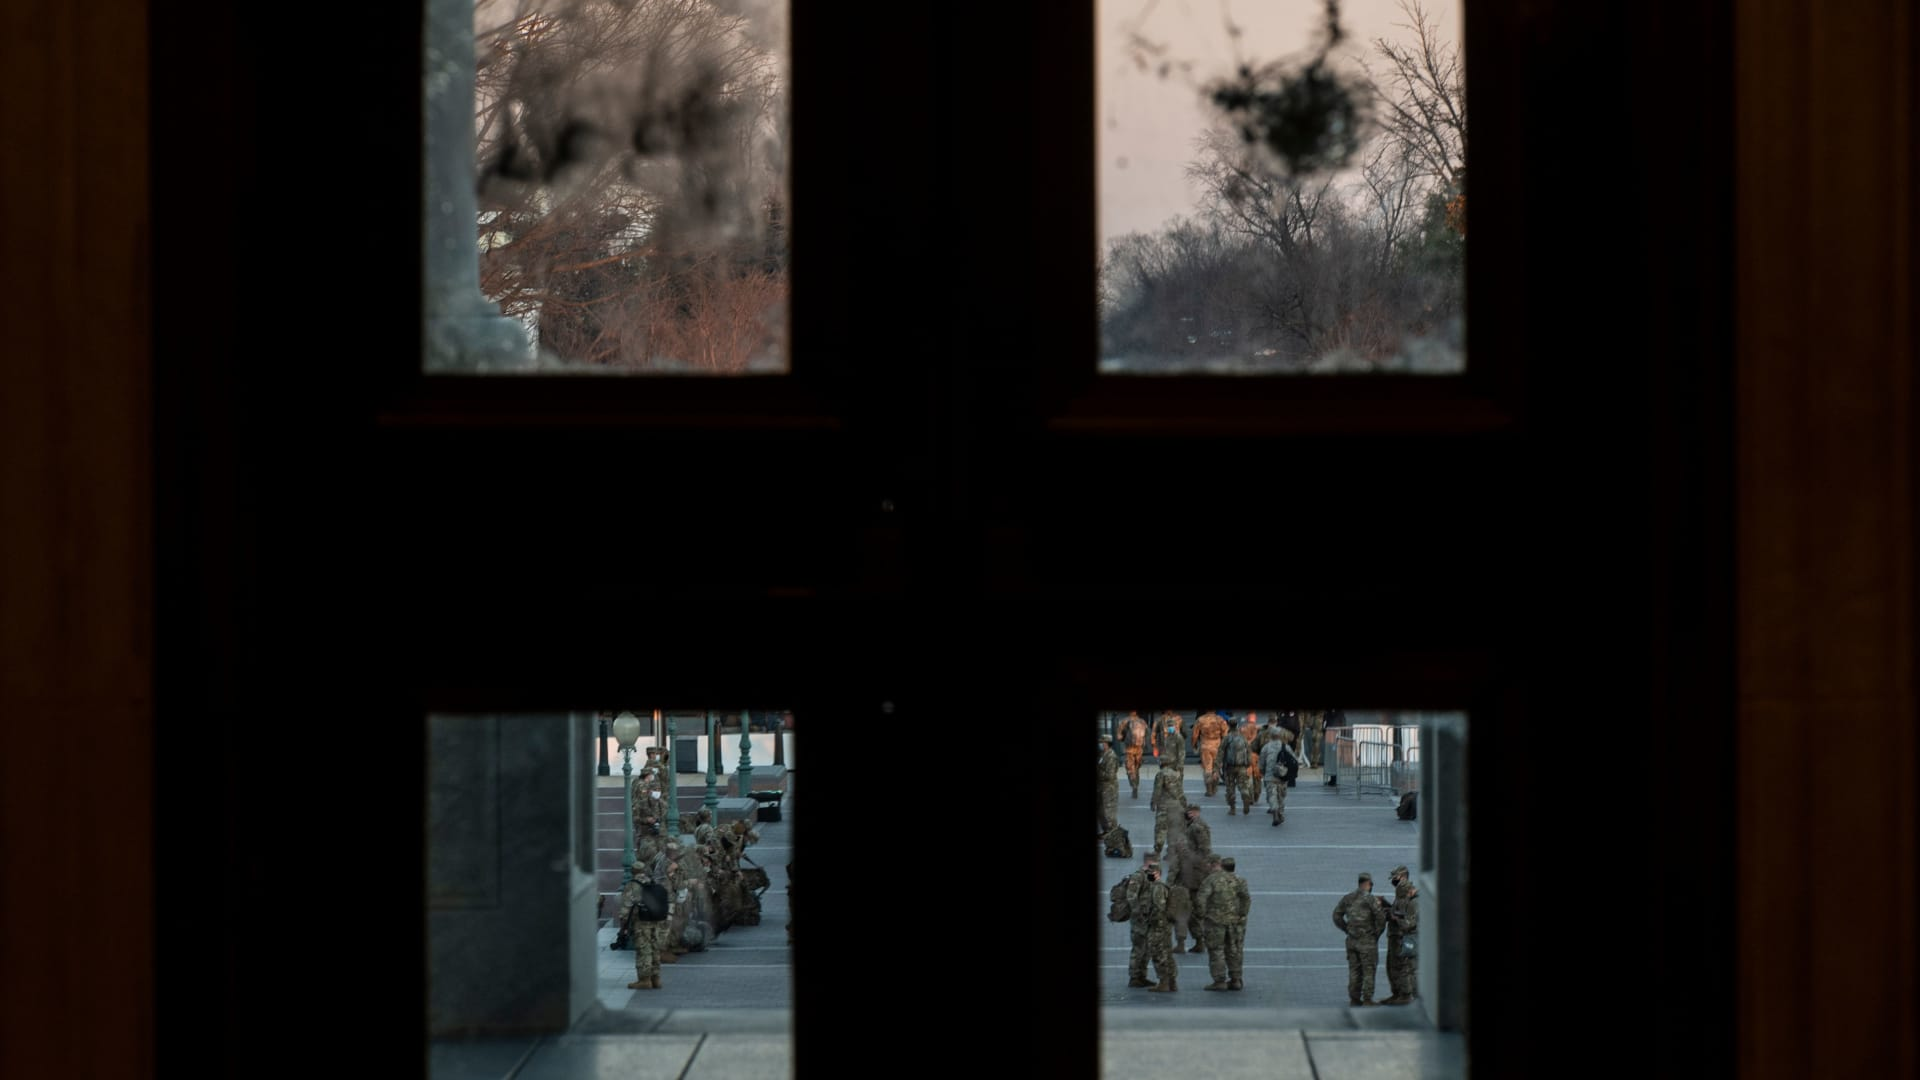 Damage is seen on a door at the US Capitol, from the January 6 riots, as members of the US National Guard arrive outside on January 12, 2021 in Washington, DC.